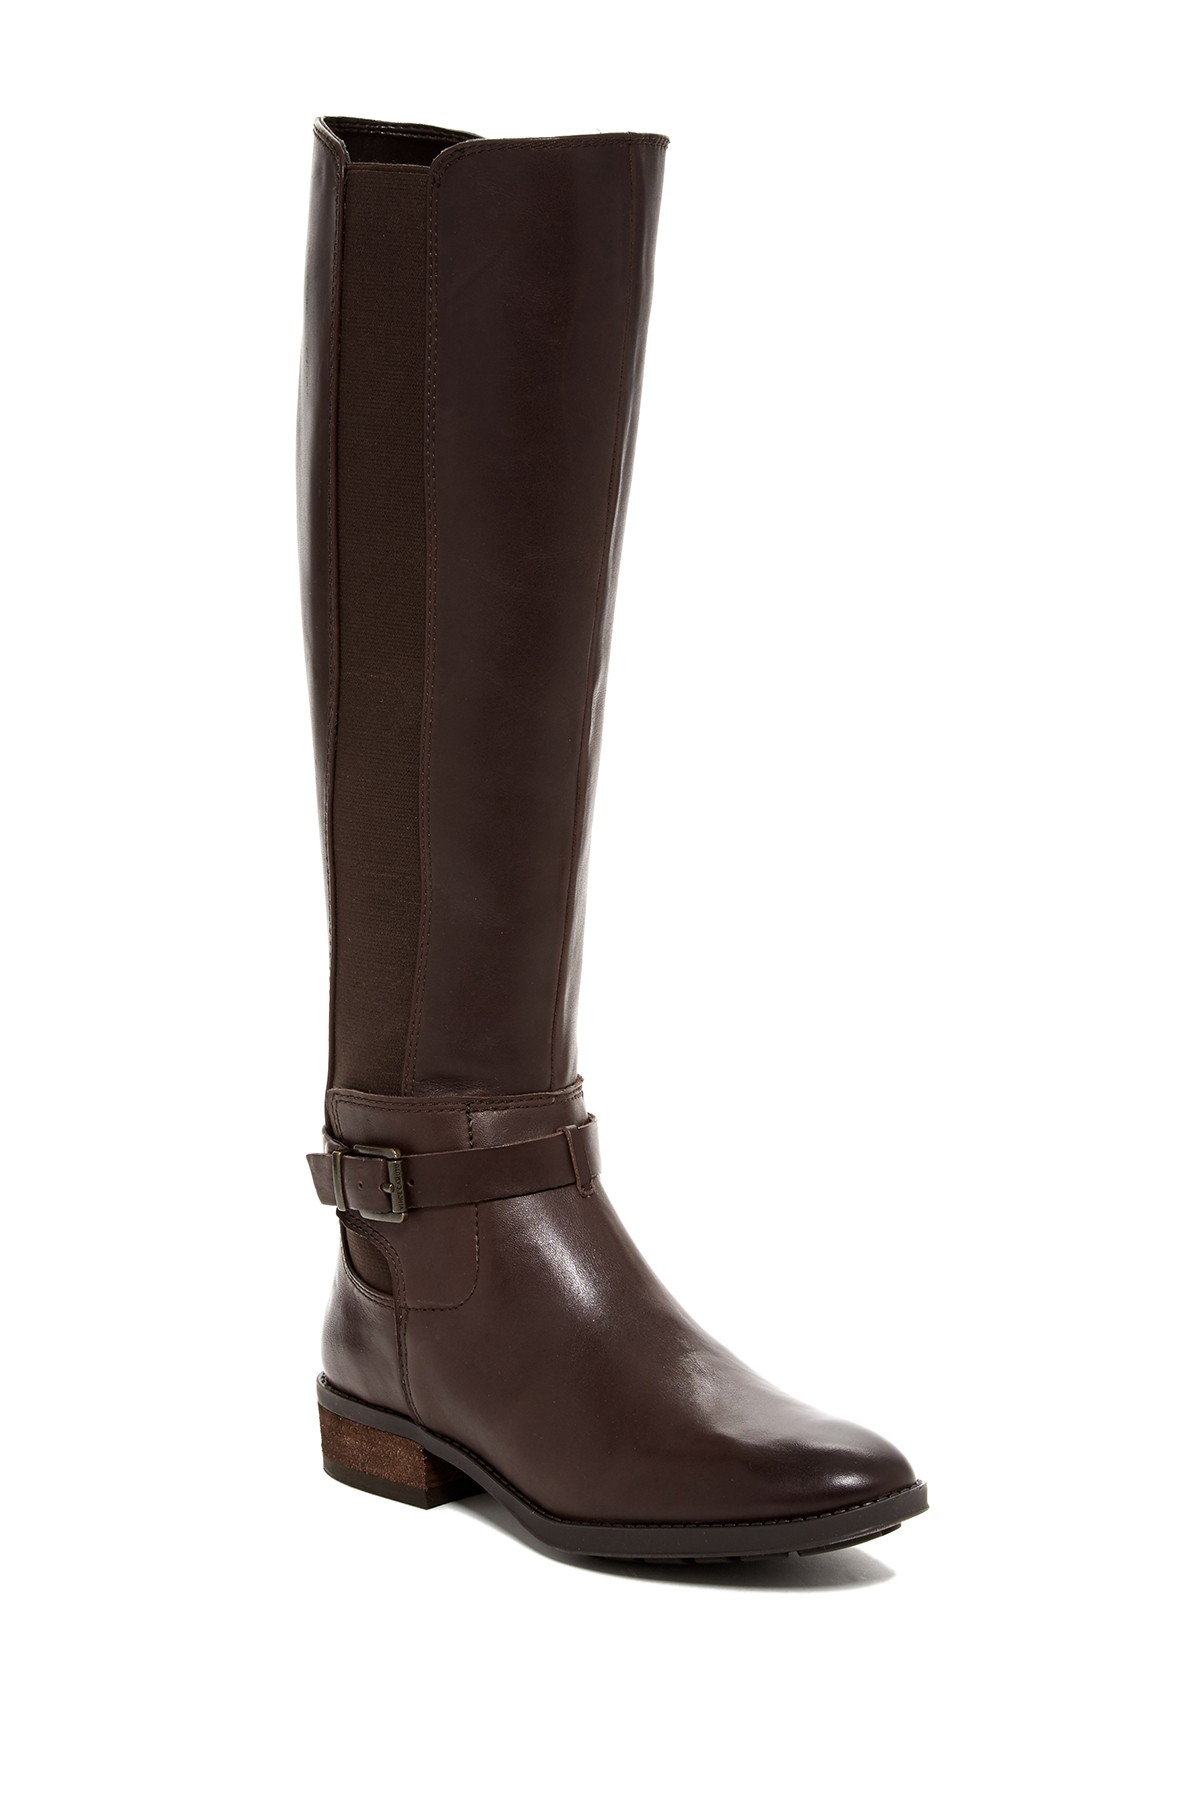 f633919a4bb Vince Camuto Women s PIPPER Riding Boot CHOCOLATE(WIDE CALF)